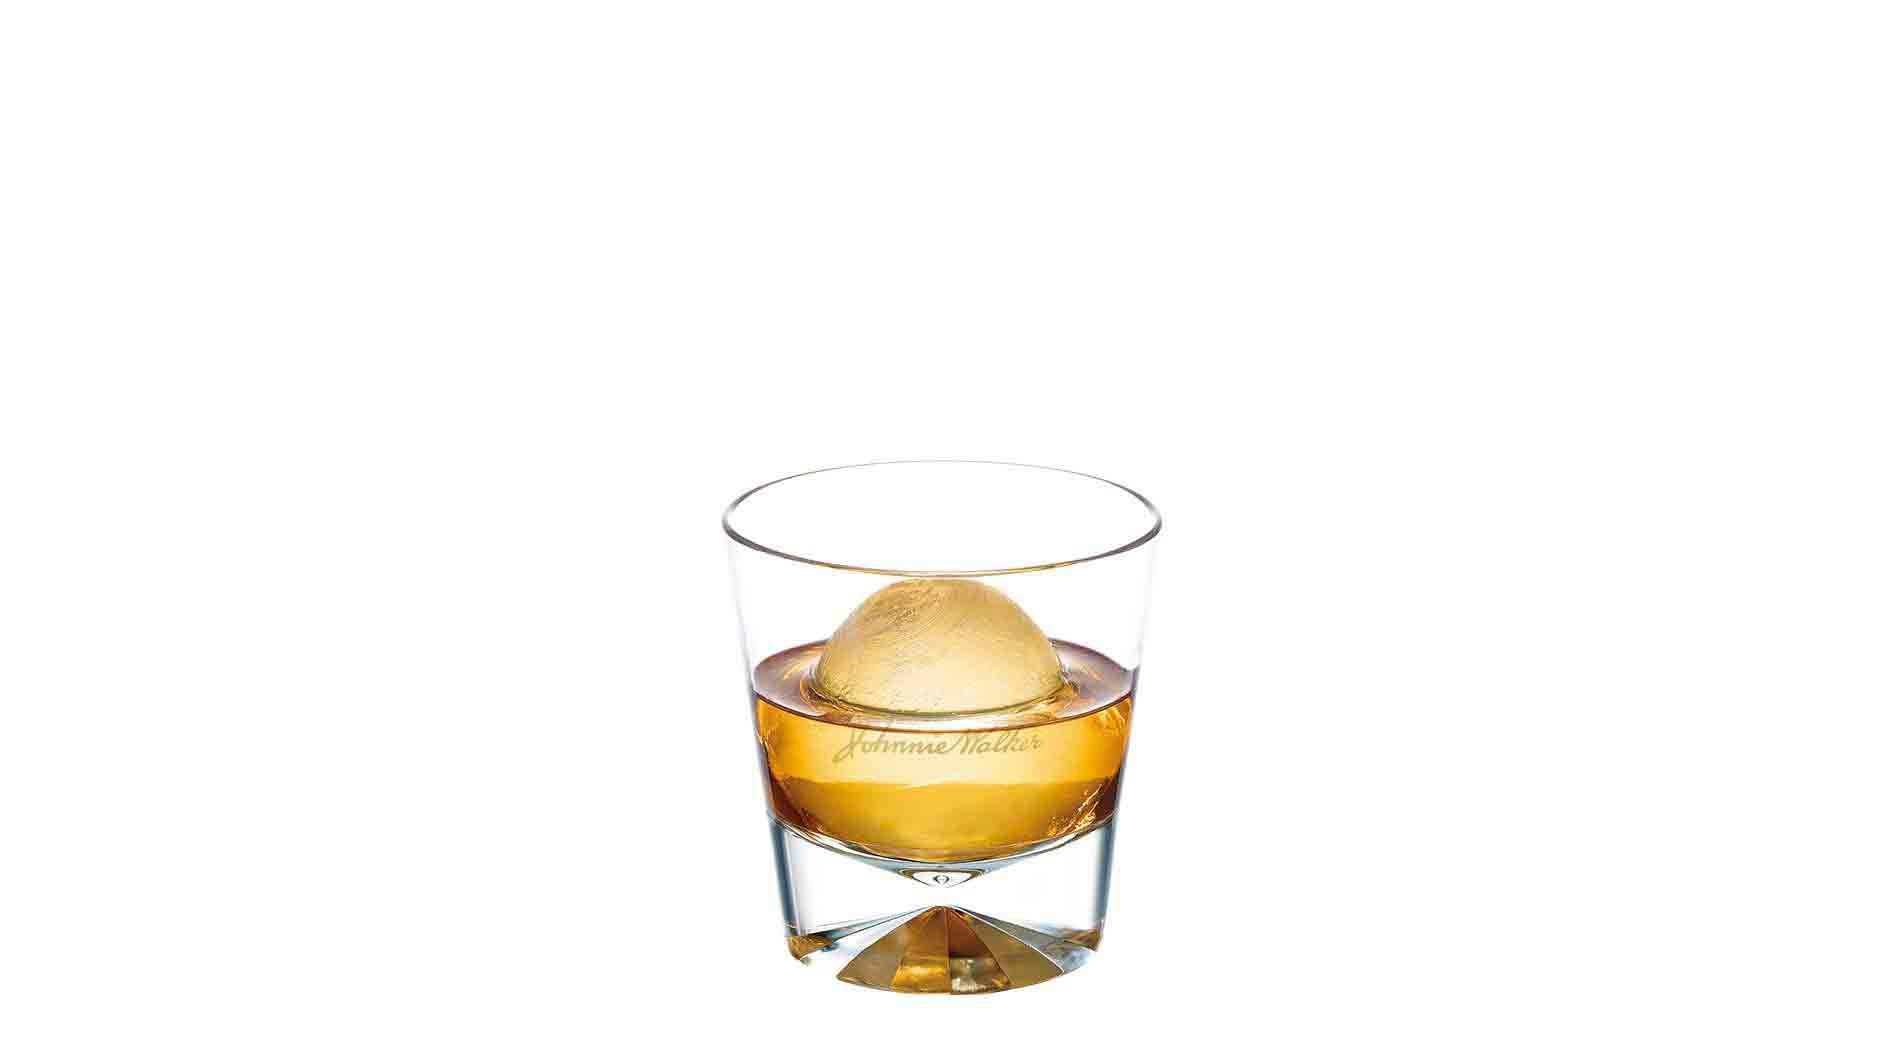 Johnnie Walker Double Black con una bola de hielo en un vaso de whisky